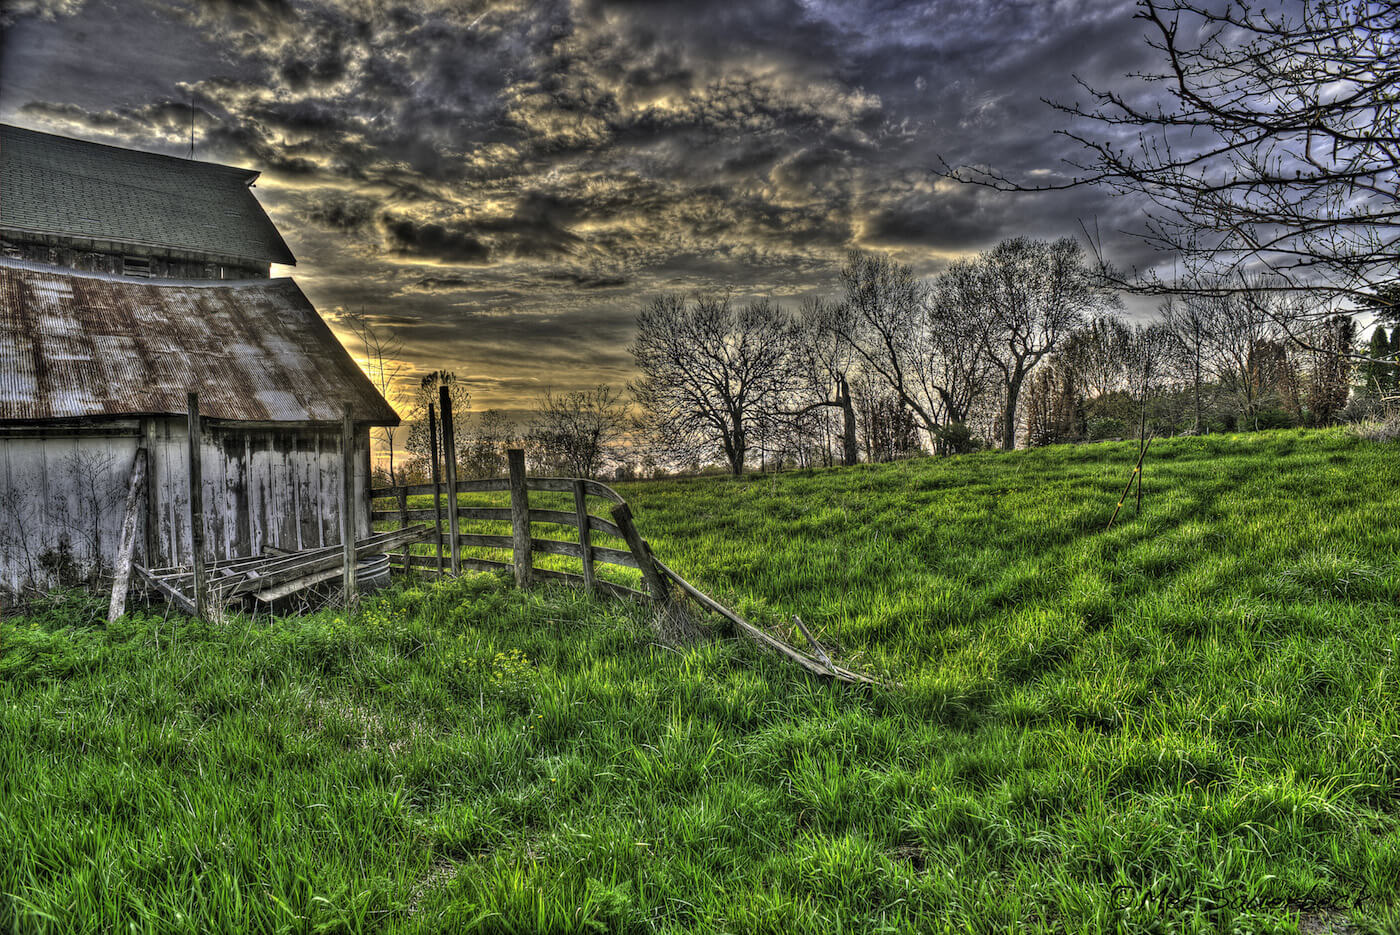 High dynamic range - HDR photo of portion of old barn and falling down fence, with deep green wet grass at sunset. Dramatic clouds overhead